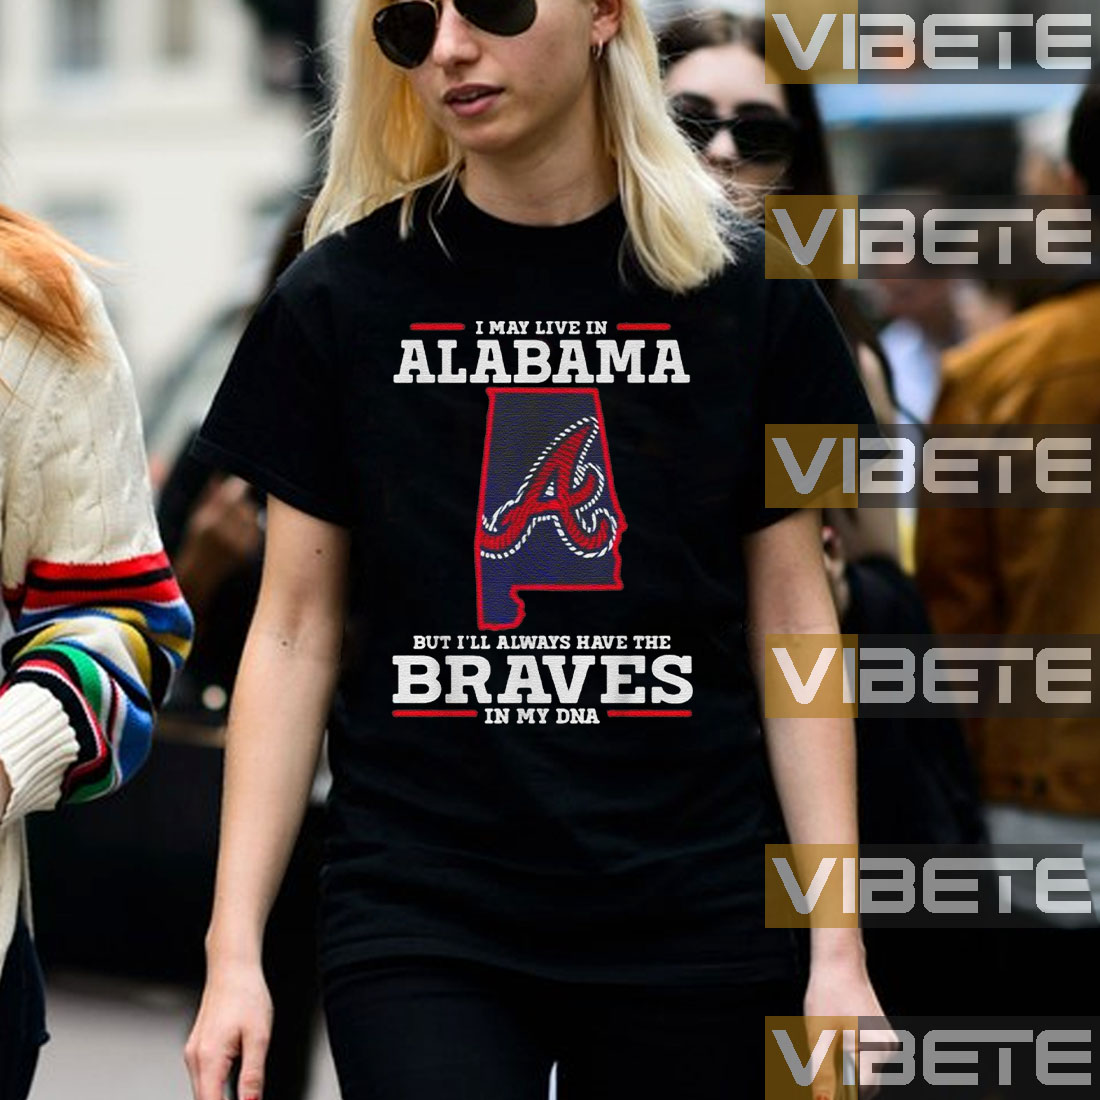 I may live in Alabama but I'll always have the Braves in my DNA shirt